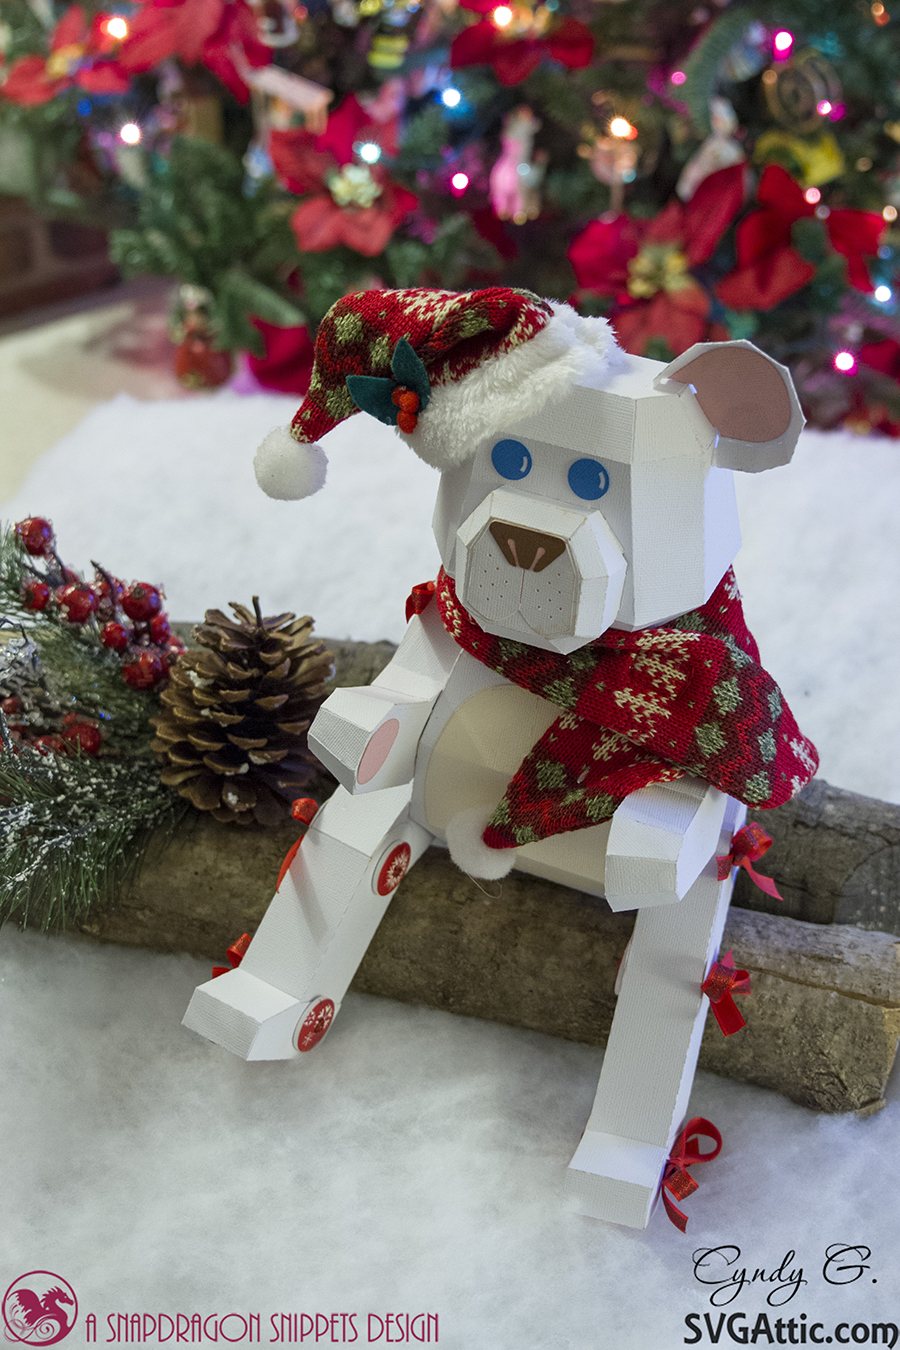 SVG Attic Blog Christmas Bear With Cyndy G